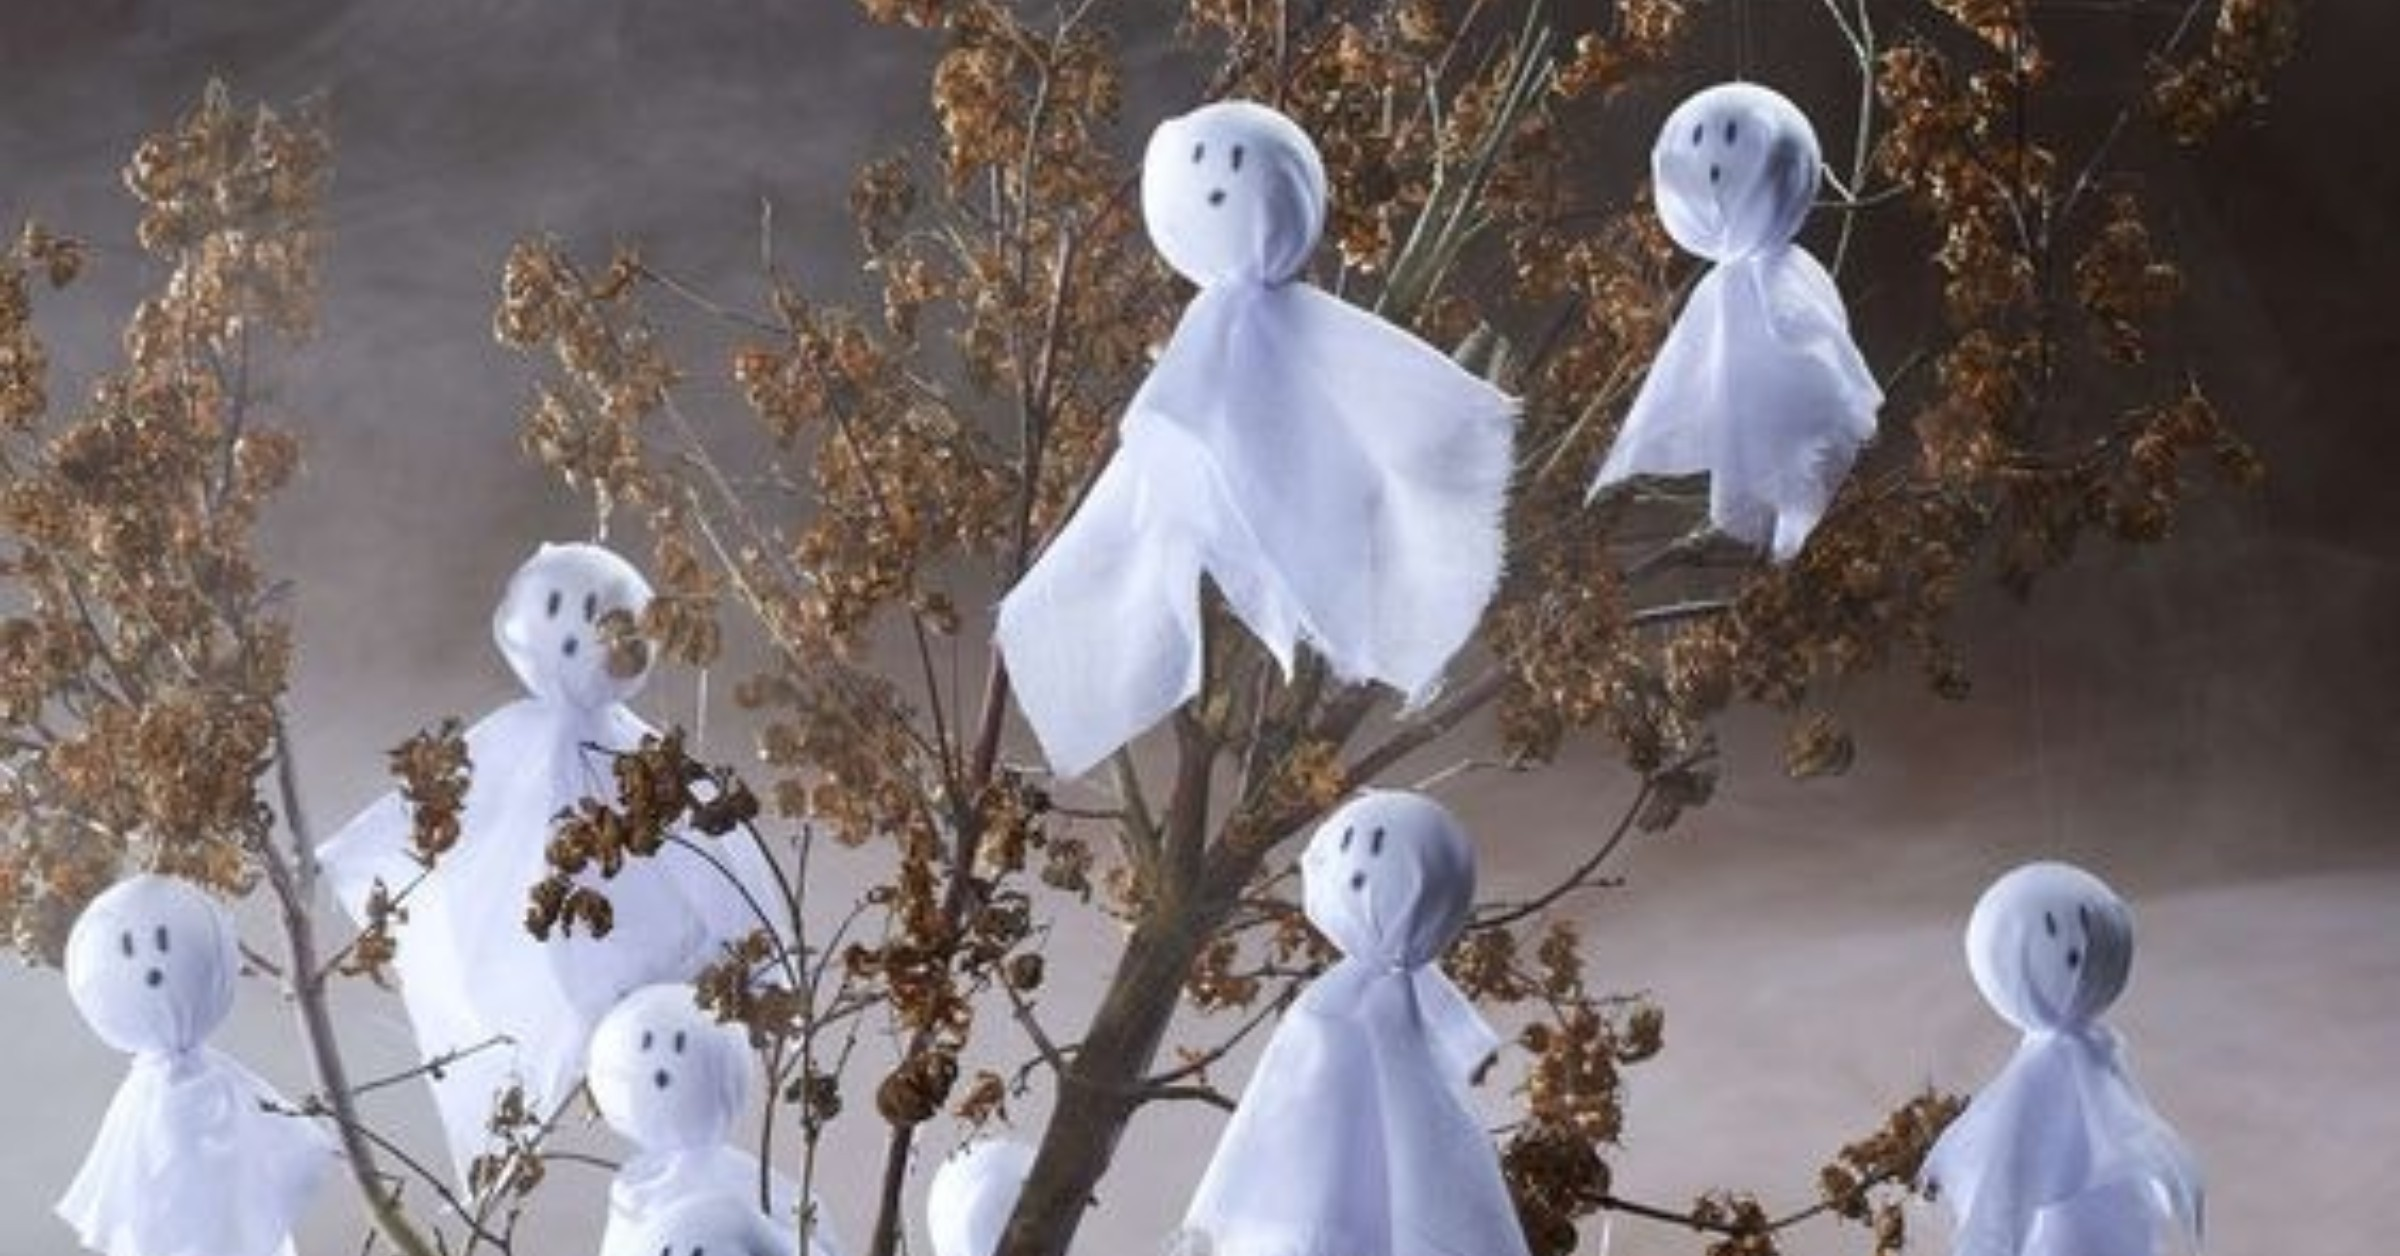 A sustainable Halloween - diy ghost image